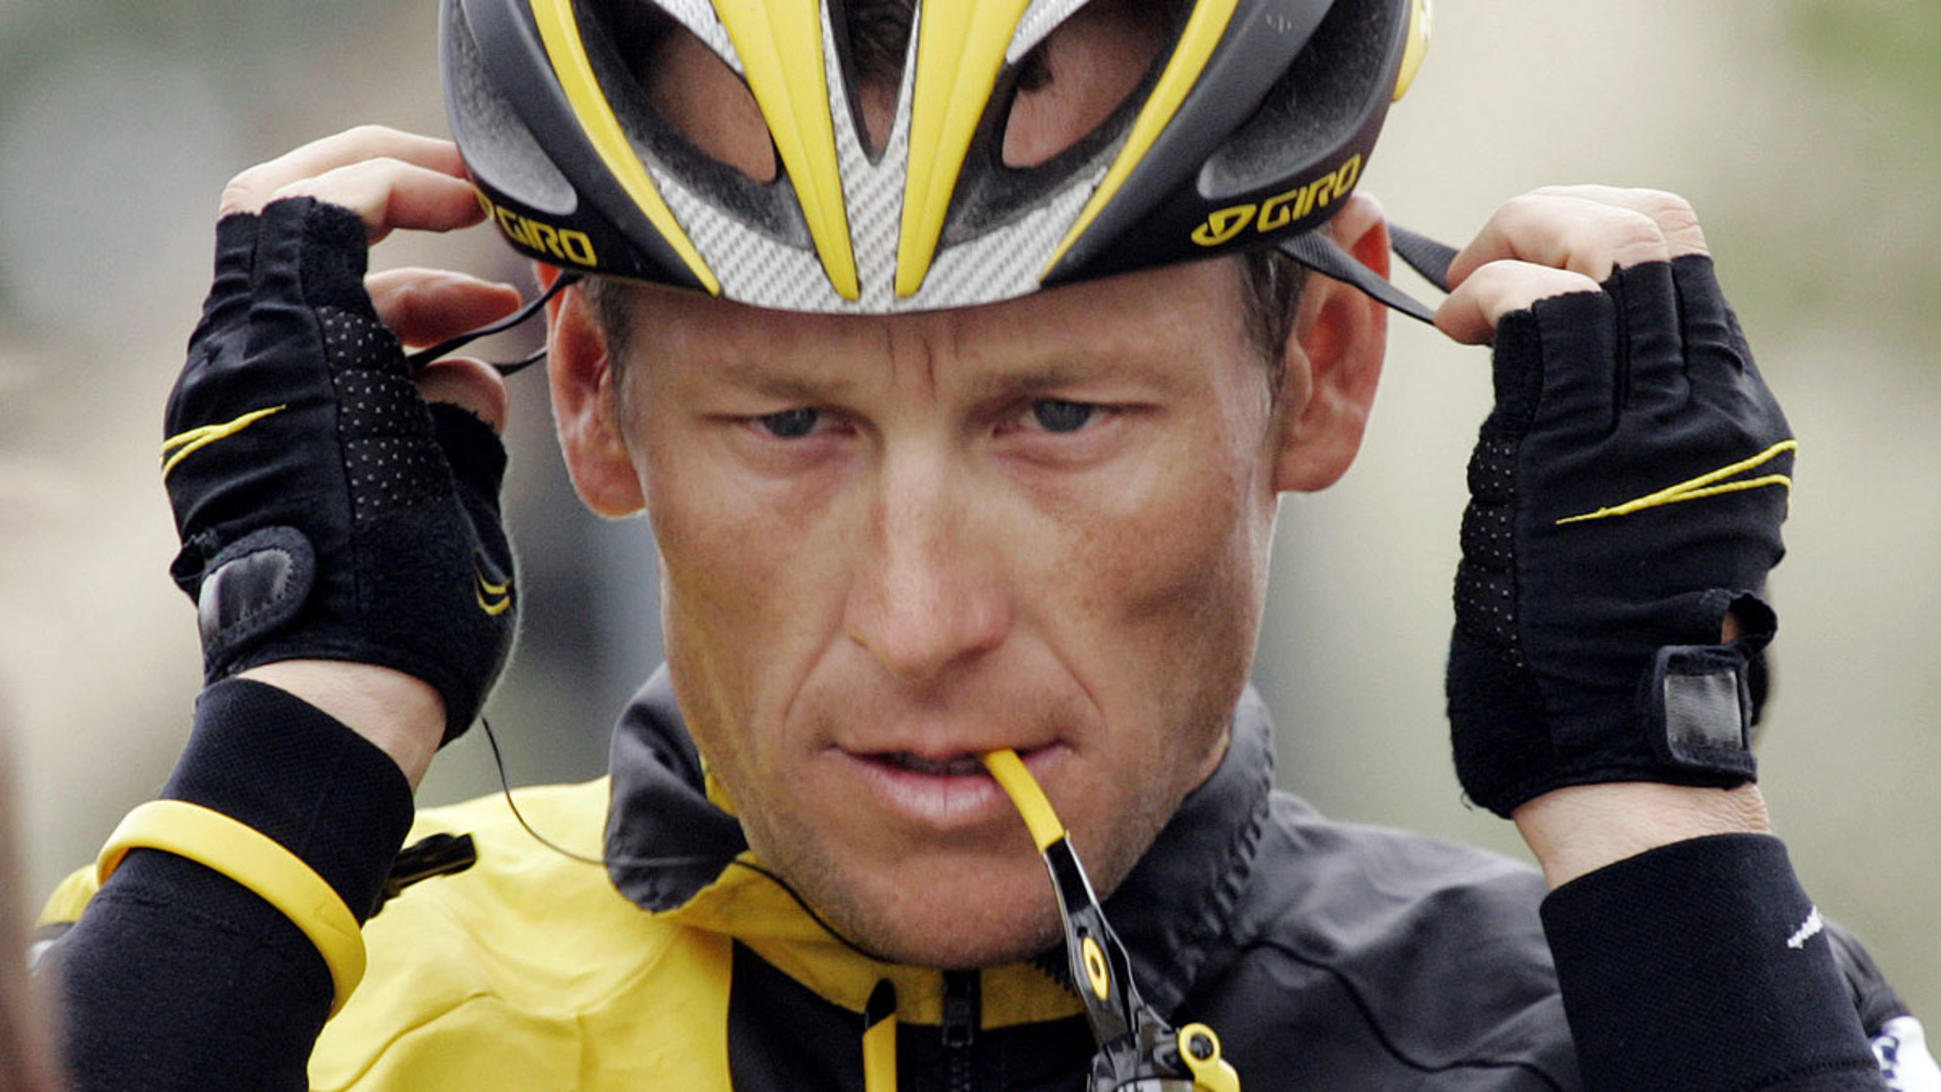 Lance Armstrong thinks doping is 'OK'